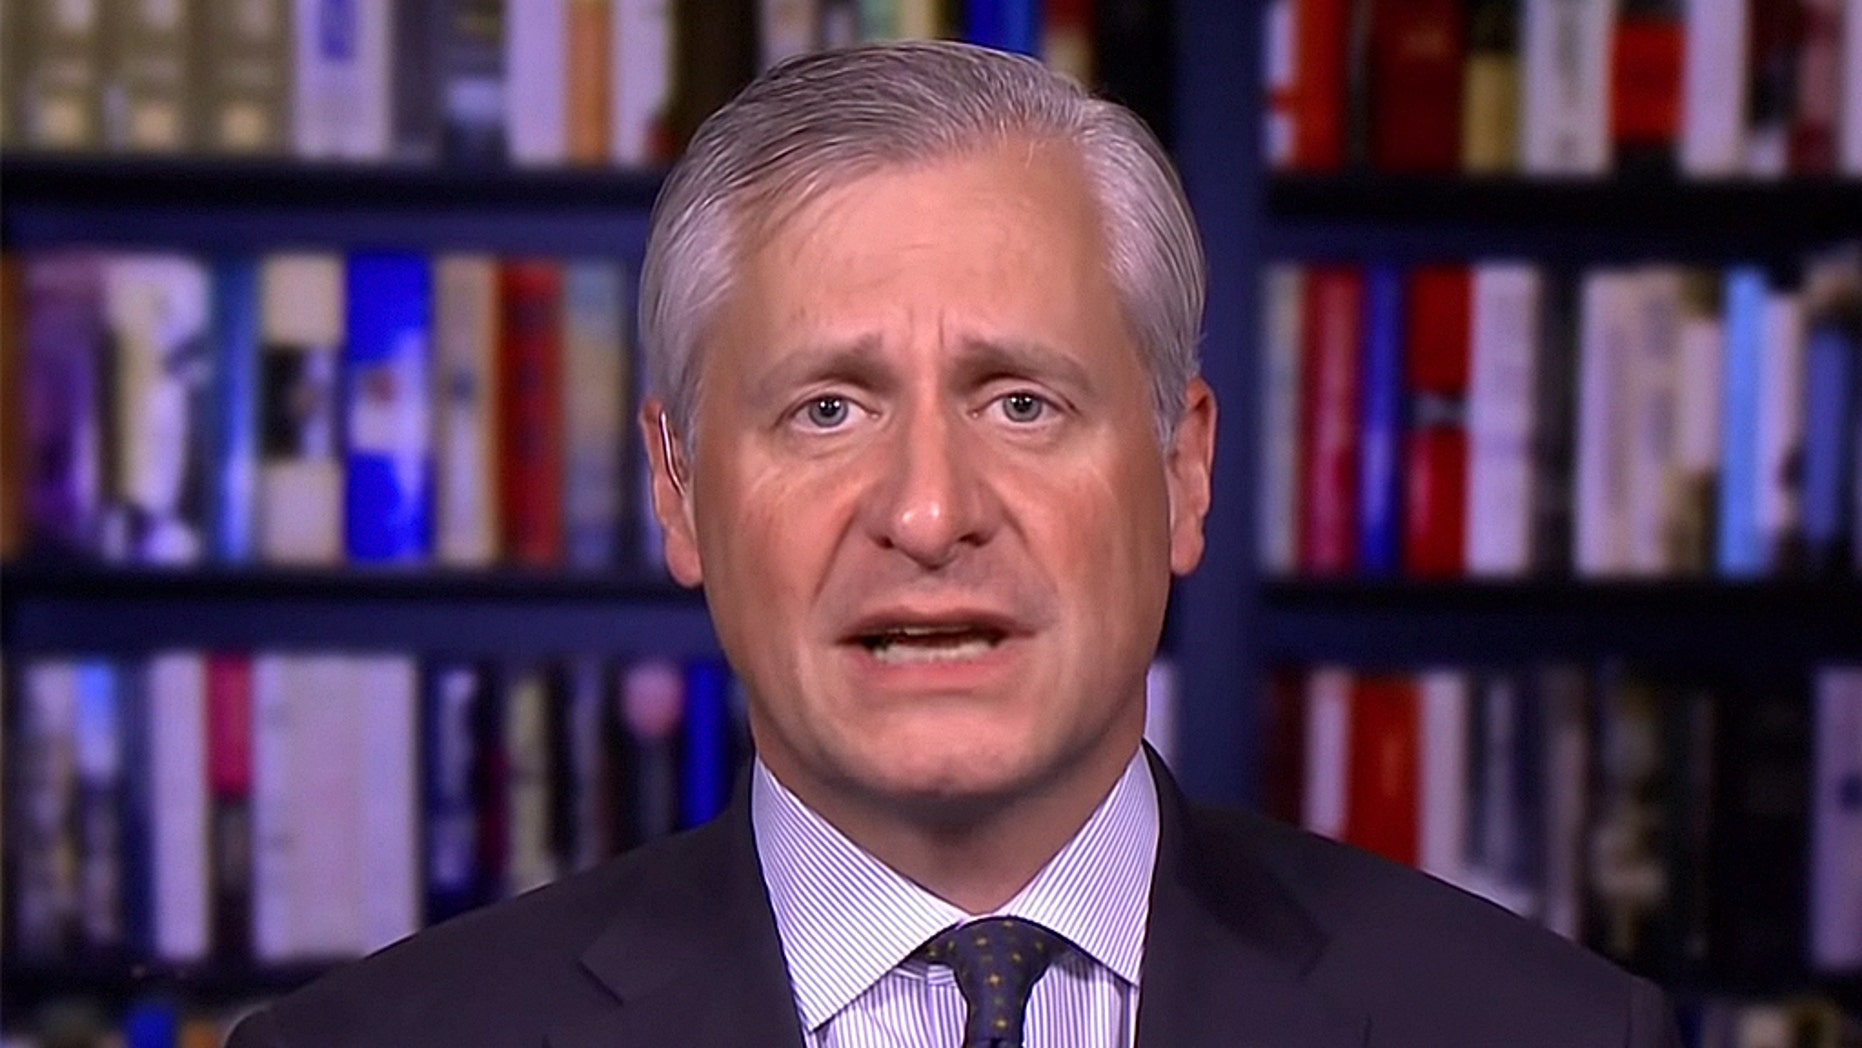 Frequent MSNBC guest Jon Meacham quoted a KKK-tied governor from 1924 when attempting to criticize the border wall.